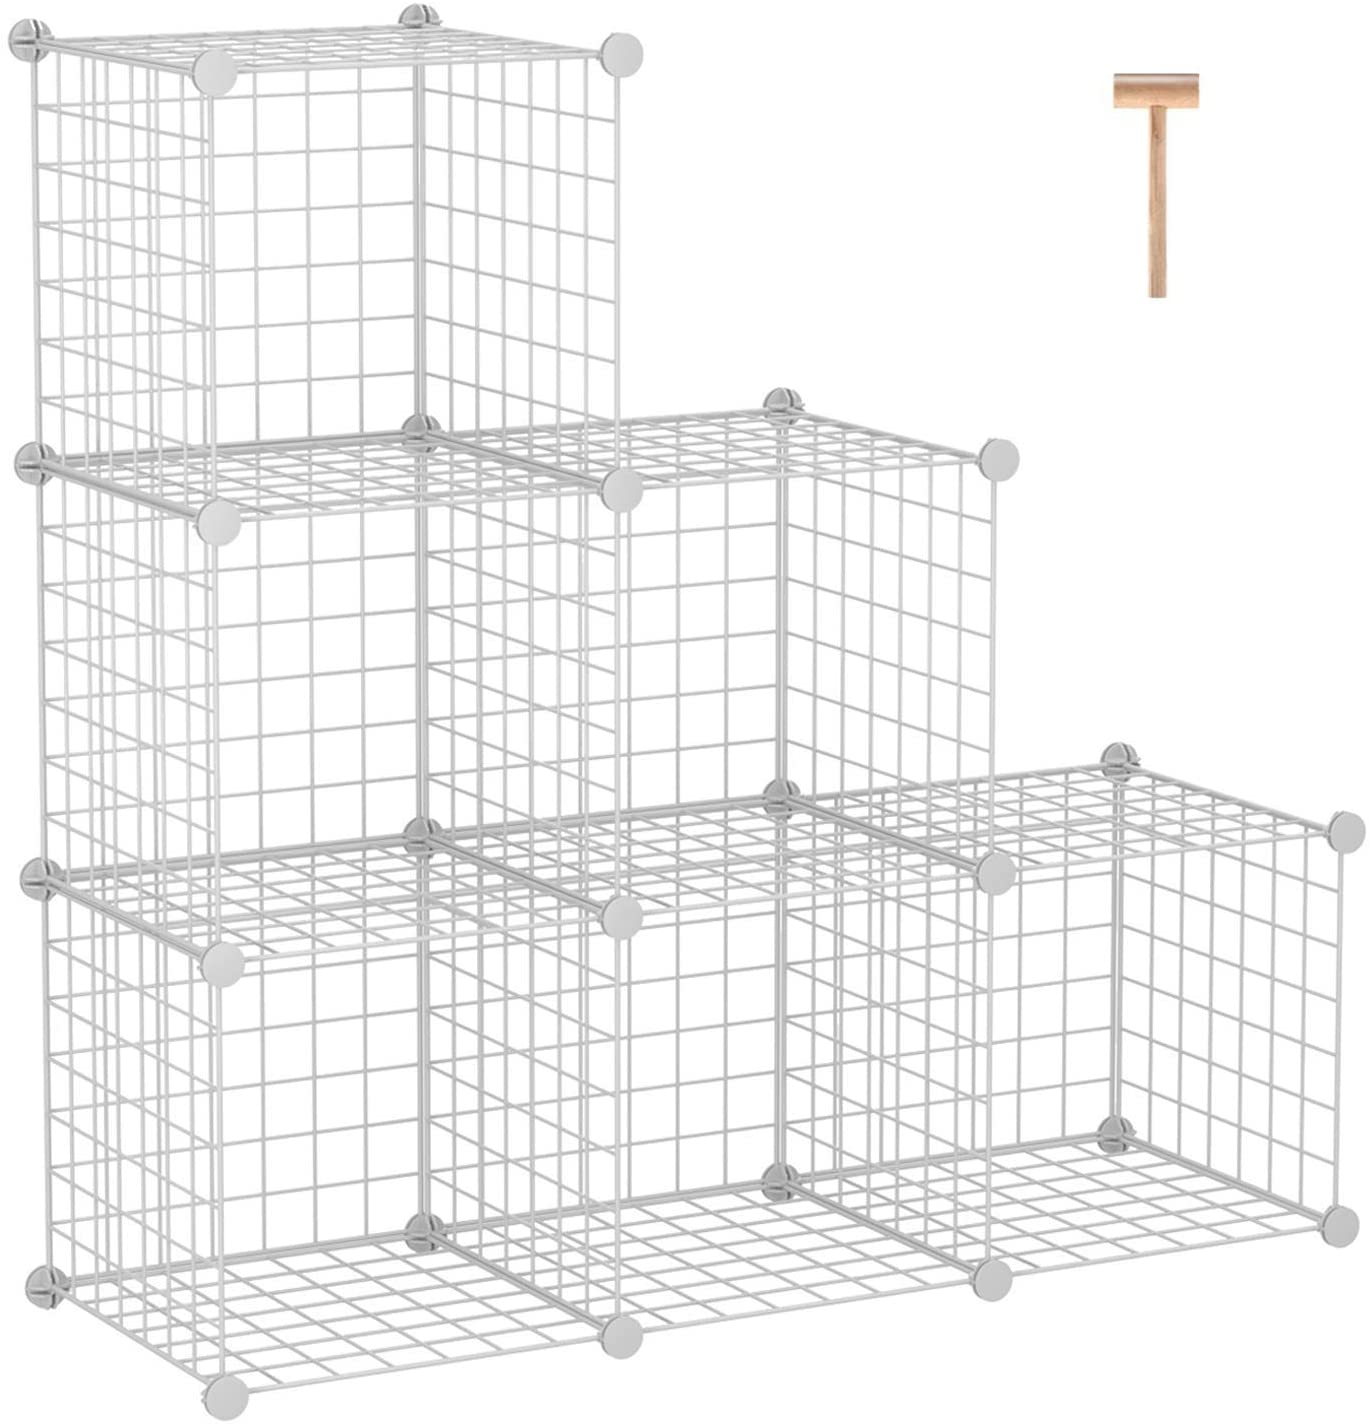 "C&AHOME Wire Storage Cubes, Metal Grids Bookshelf, Modular Shelving Units, Stackable Bookcase, 6 Cubes Closet Organizer for Home, Office, Kids Room, 36.6""L x 12.4""W x 36.6""H White"